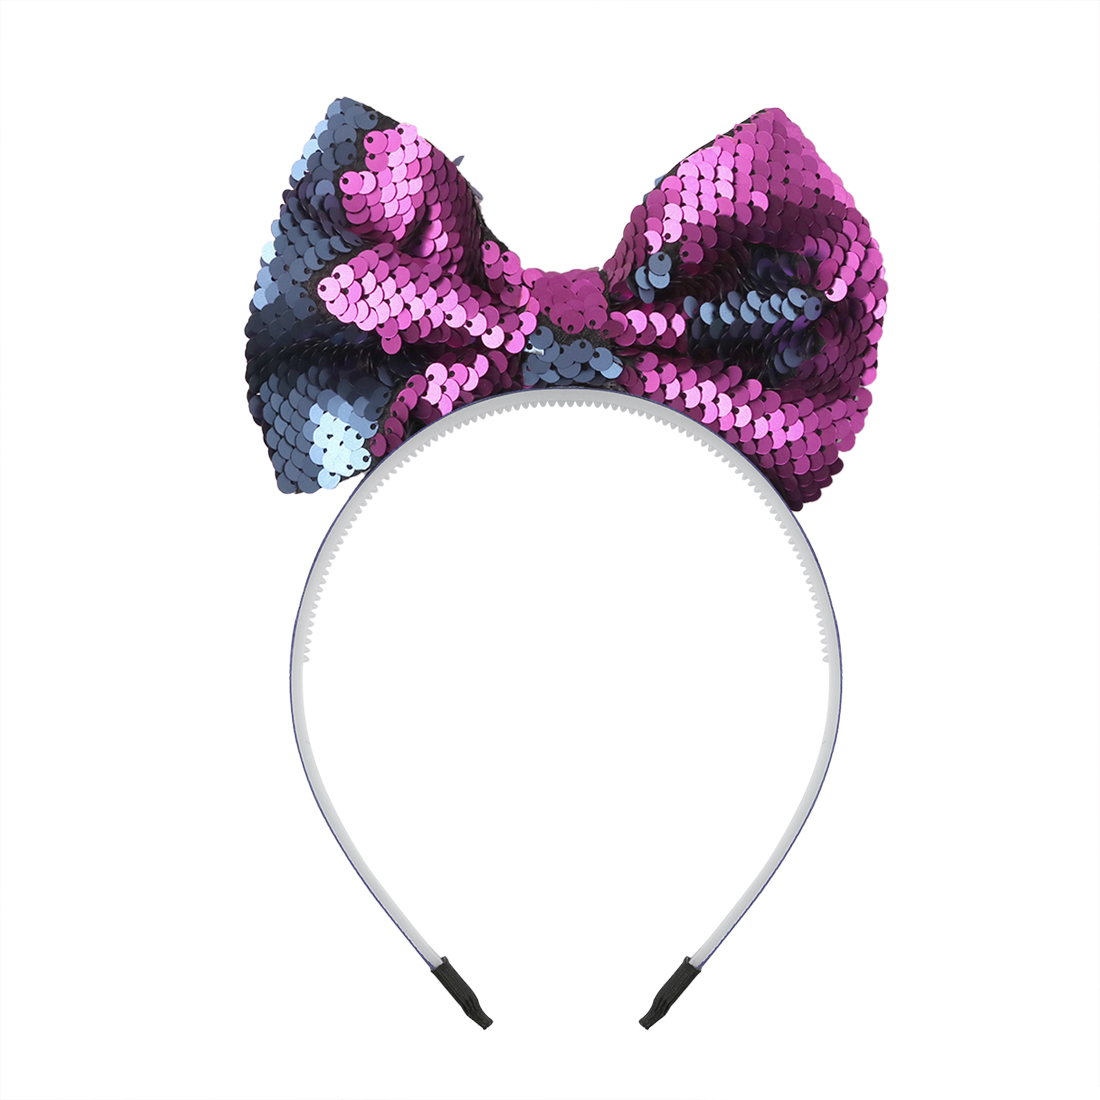 """1 Pc 5"""" Big Reversible Sequin Bows With Plastic Hairbands Colorful Rainbow Headbands For Birthday Party To Enjoy High Reputation At Home And Abroad"""